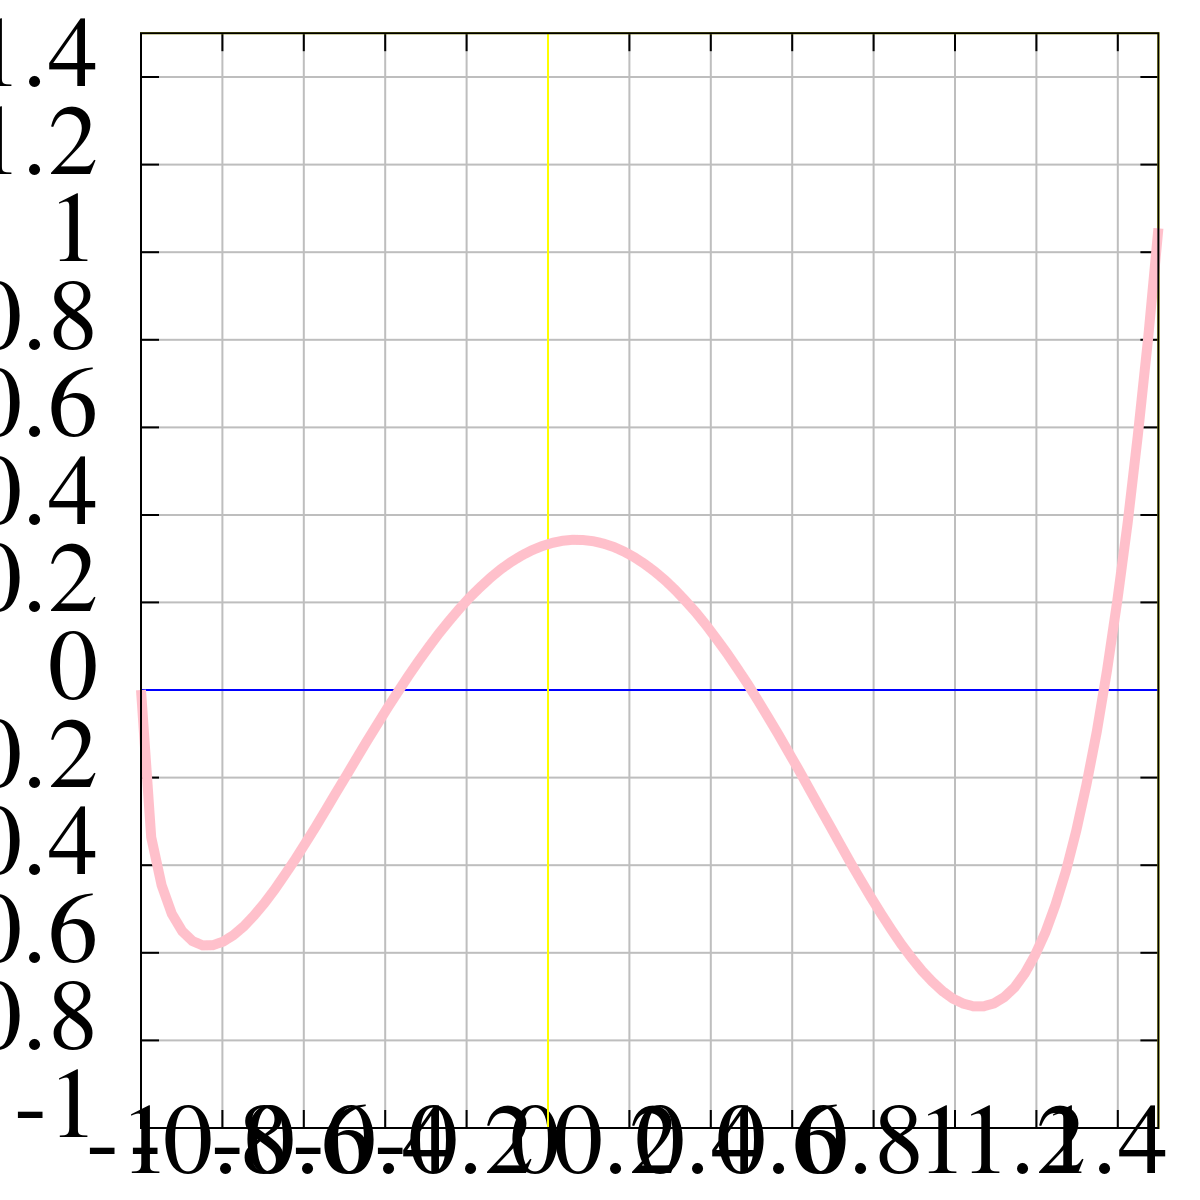 A depiction of a function on a cartesian plane